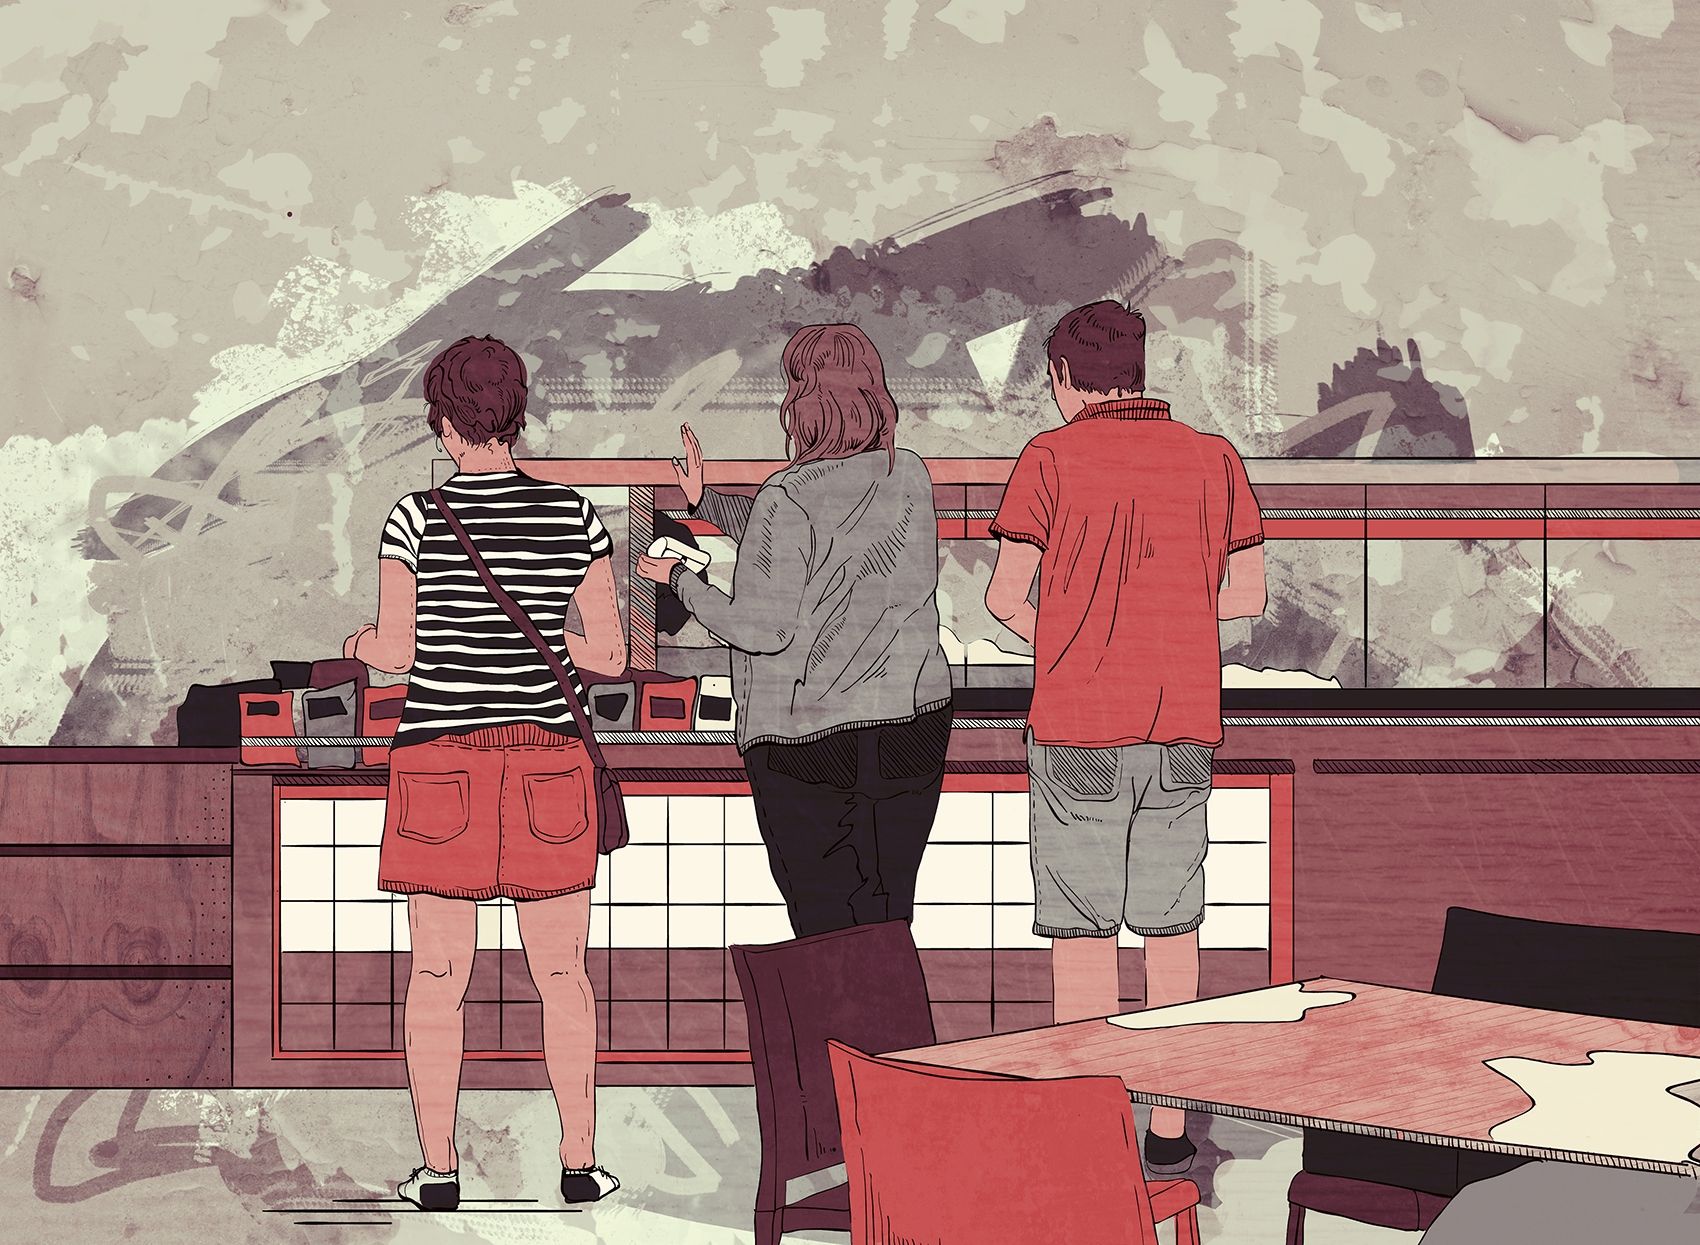 Fast food shop - illustration, drawing - malgrodzka | ello